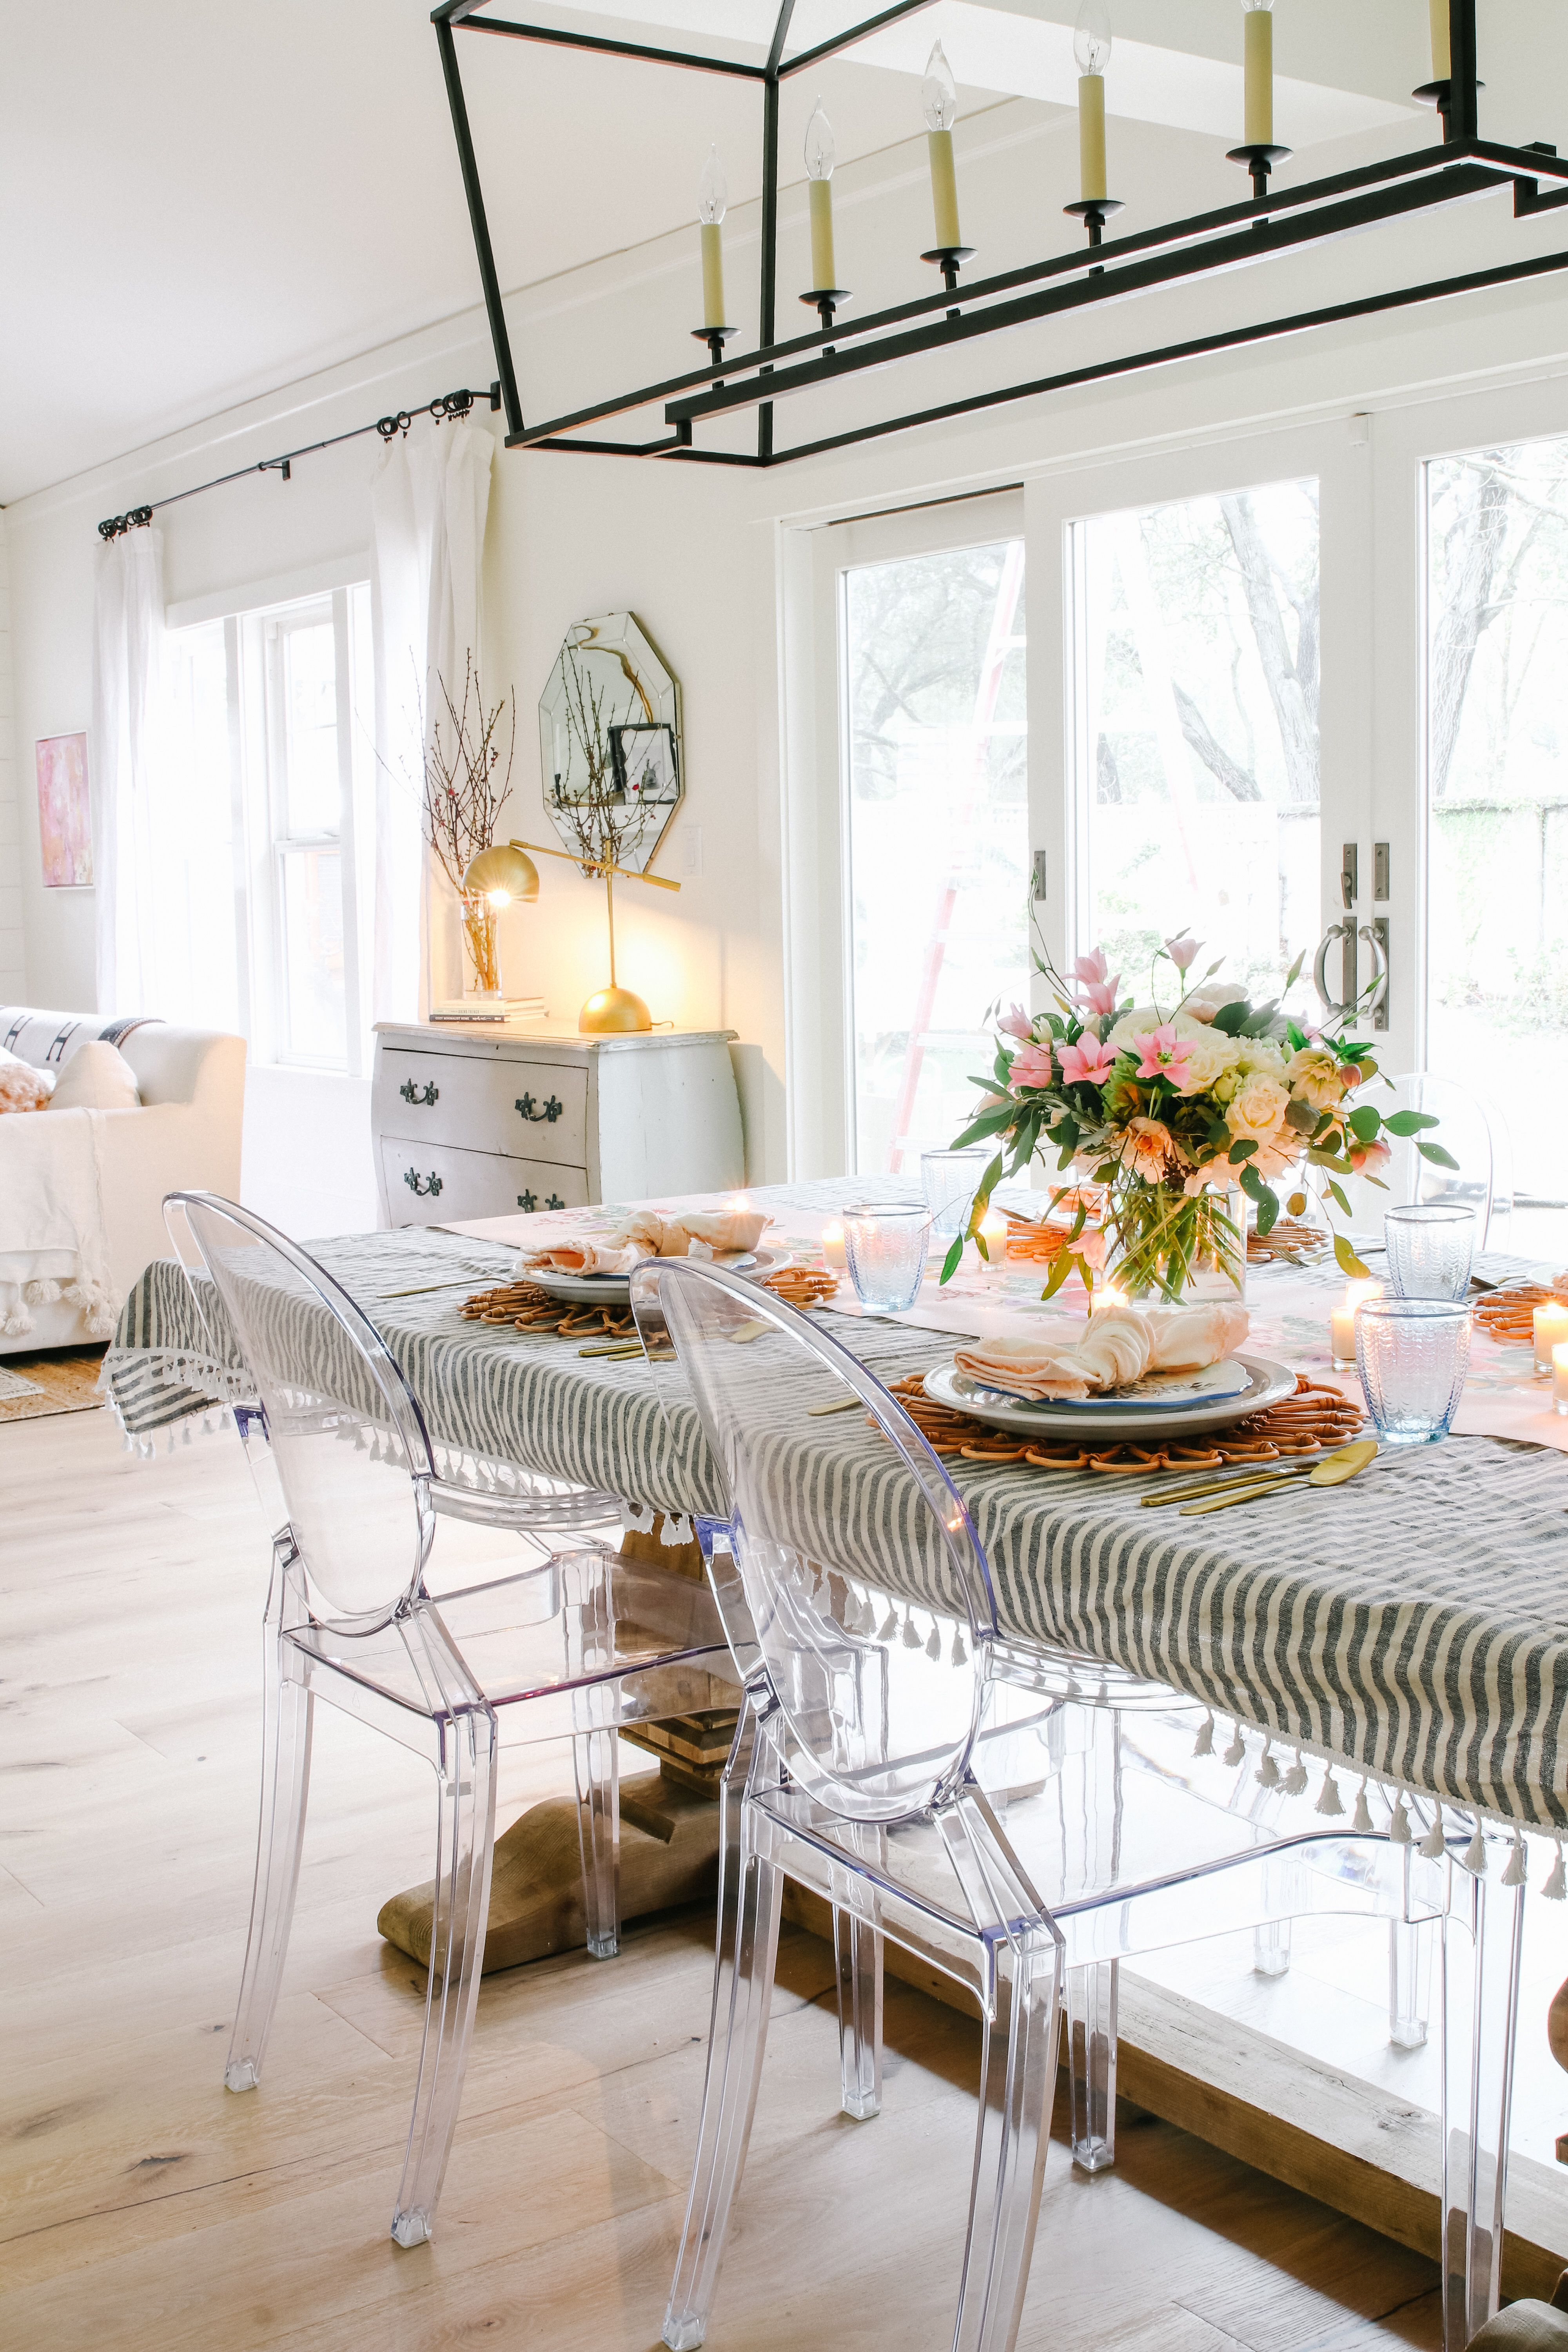 Home Decorating Ideas With Bohemian Style 2020 Home Decor